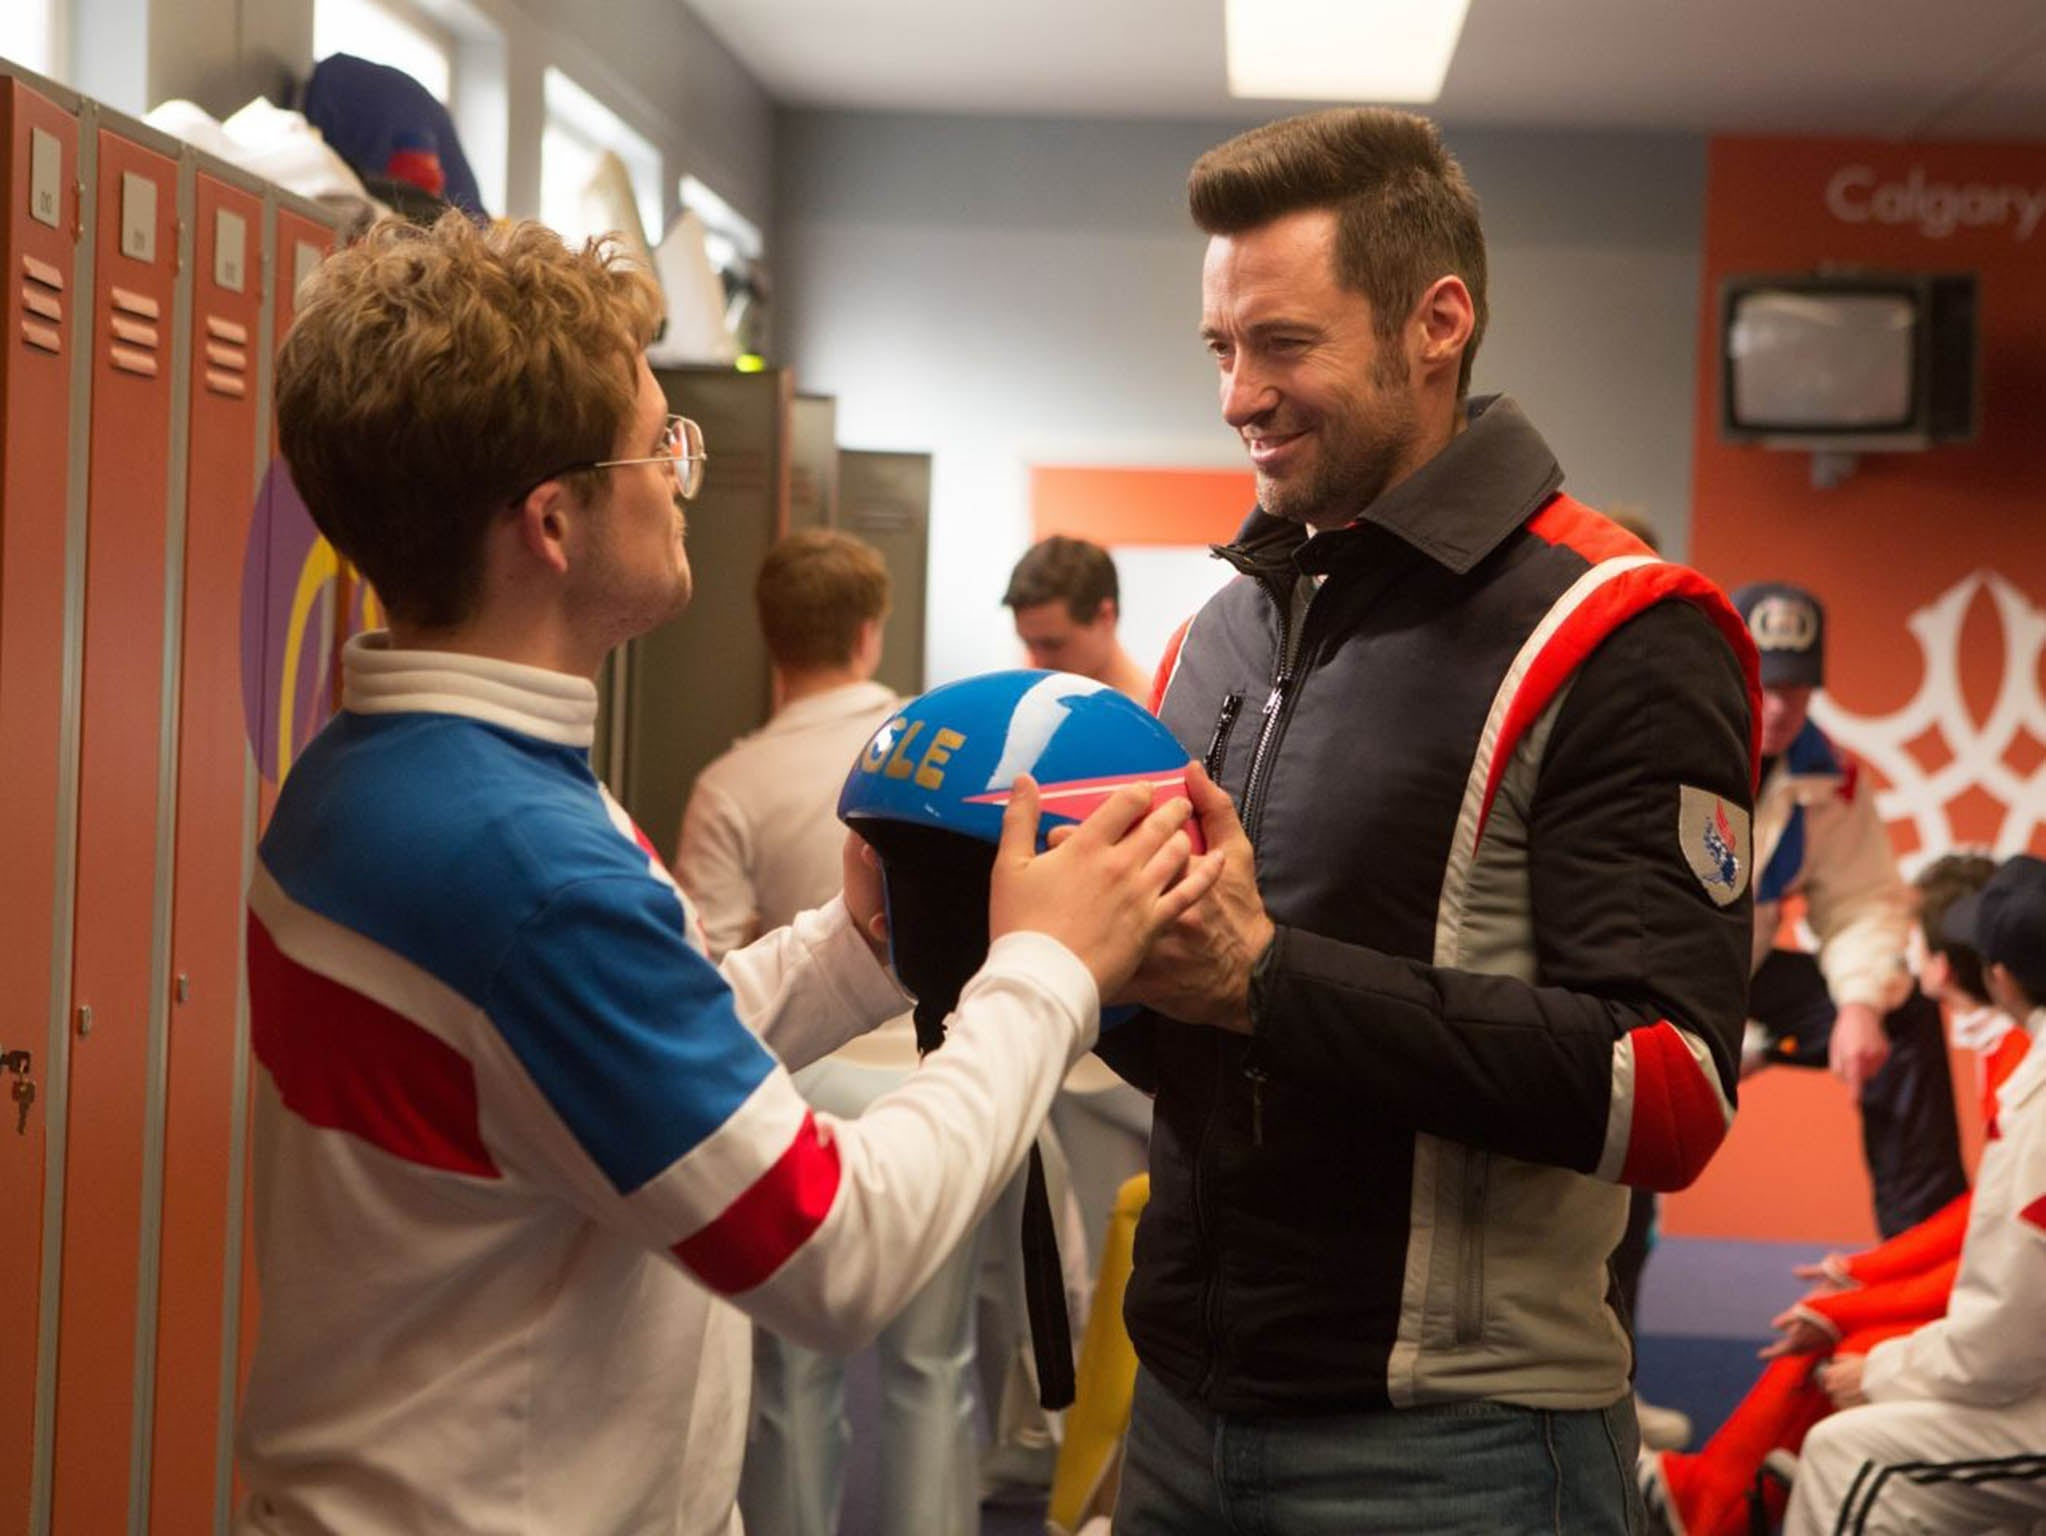 Gary Barlow on meeting Eddie the Eagle and collaborating on